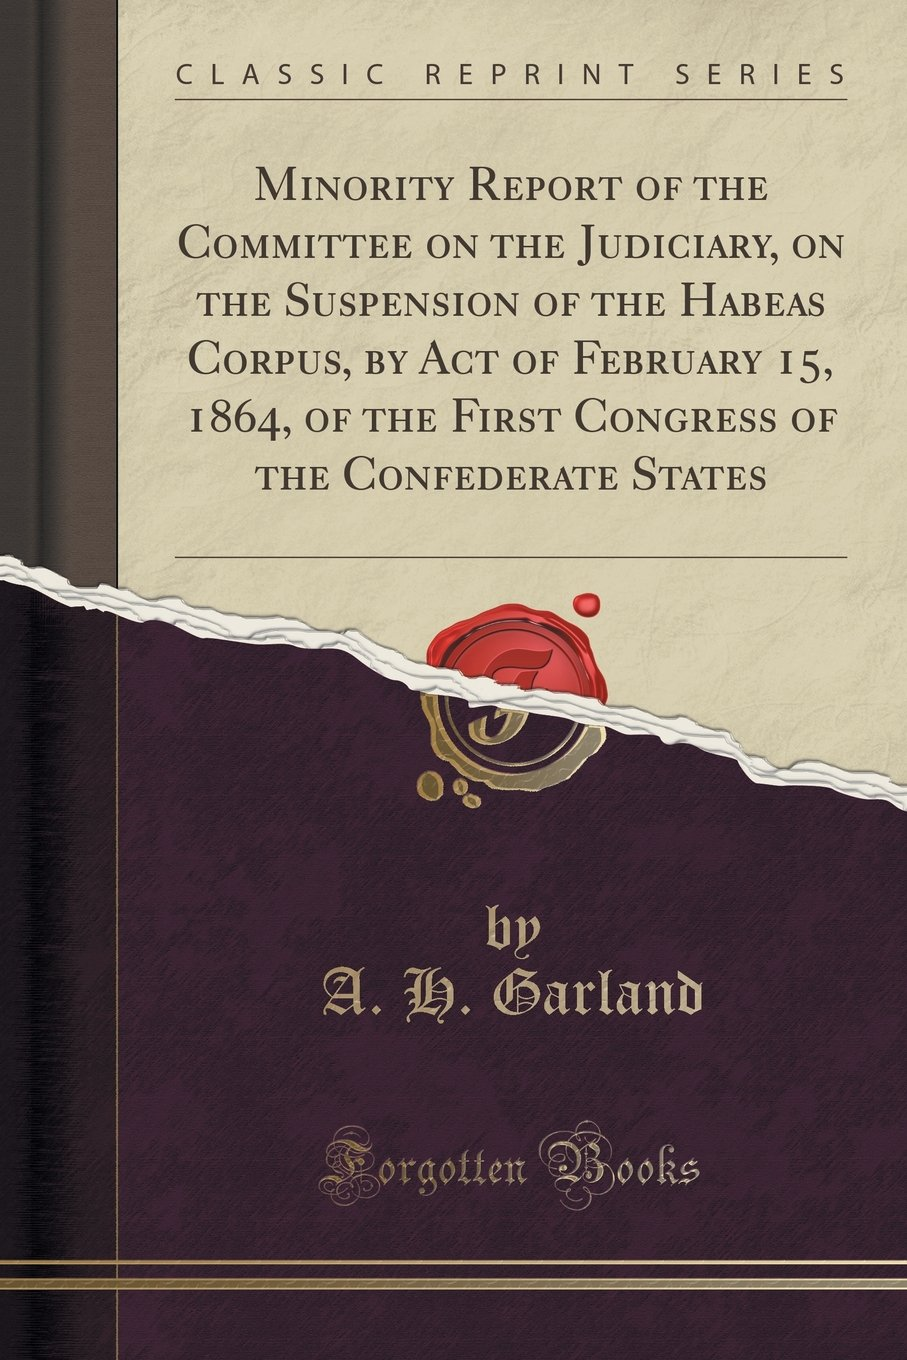 Download Minority Report of the Committee on the Judiciary, on the Suspension of the Habeas Corpus, by Act of February 15, 1864, of the First Congress of the Confederate States (Classic Reprint) PDF